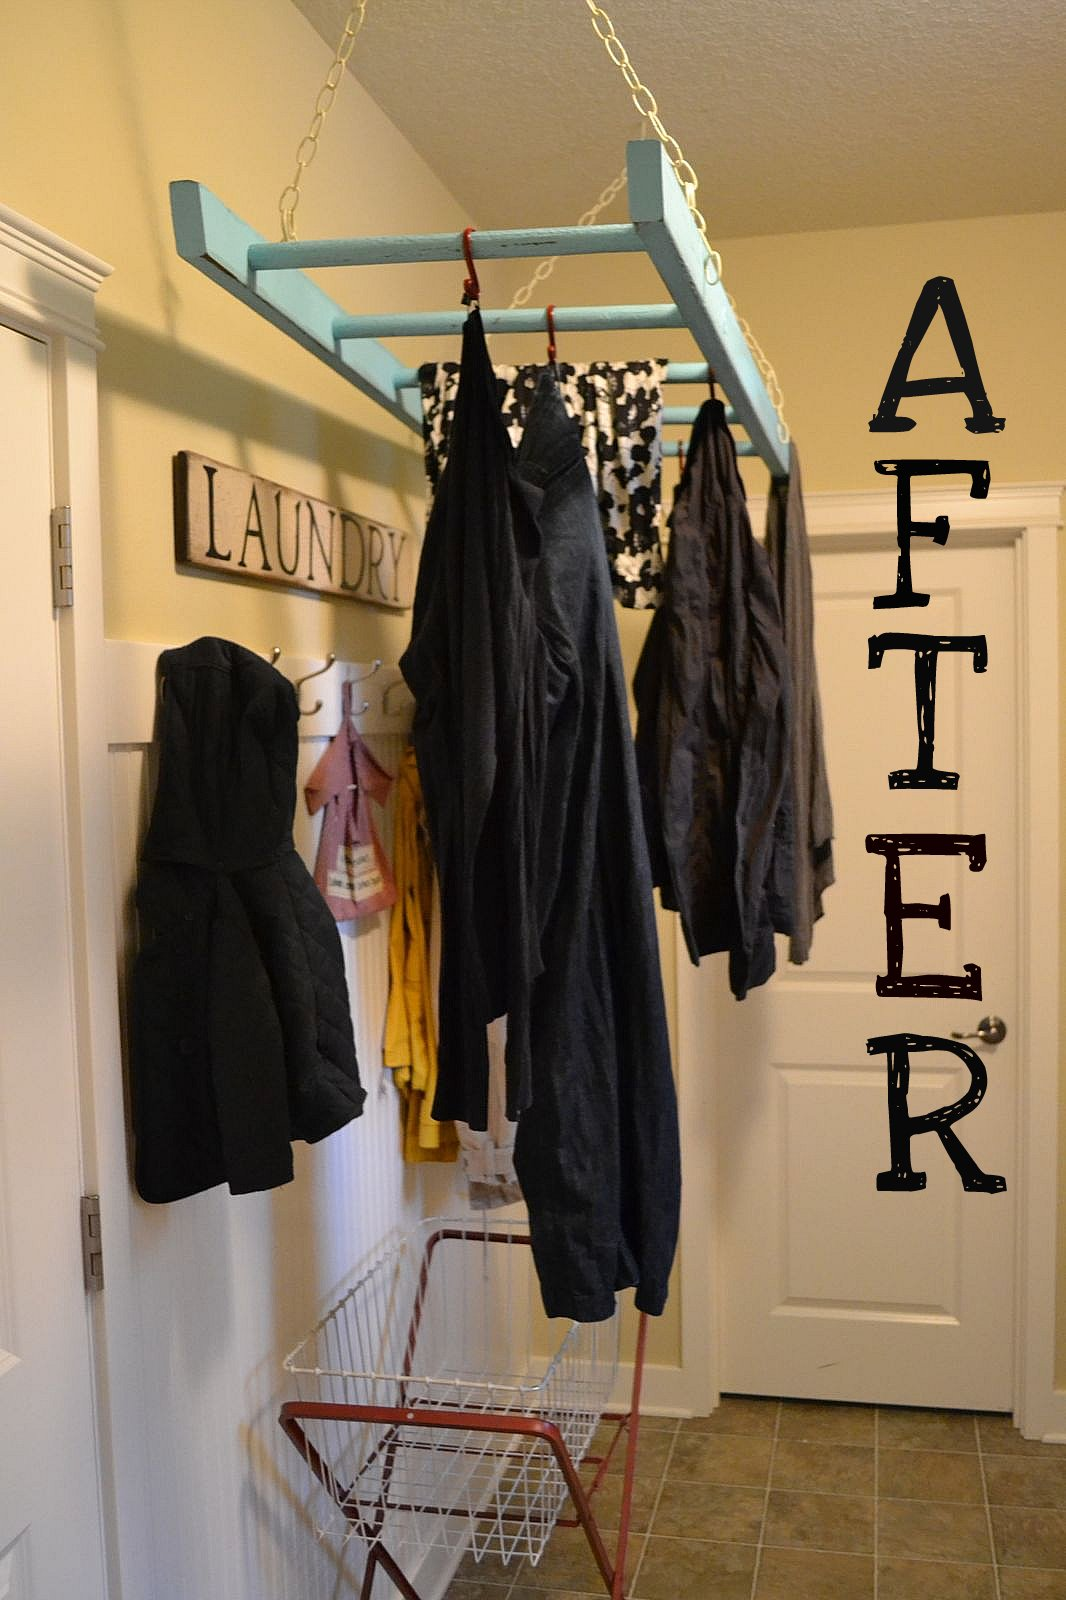 Remodelaholic Reuse Ladder Into A Laundry Rack Idea